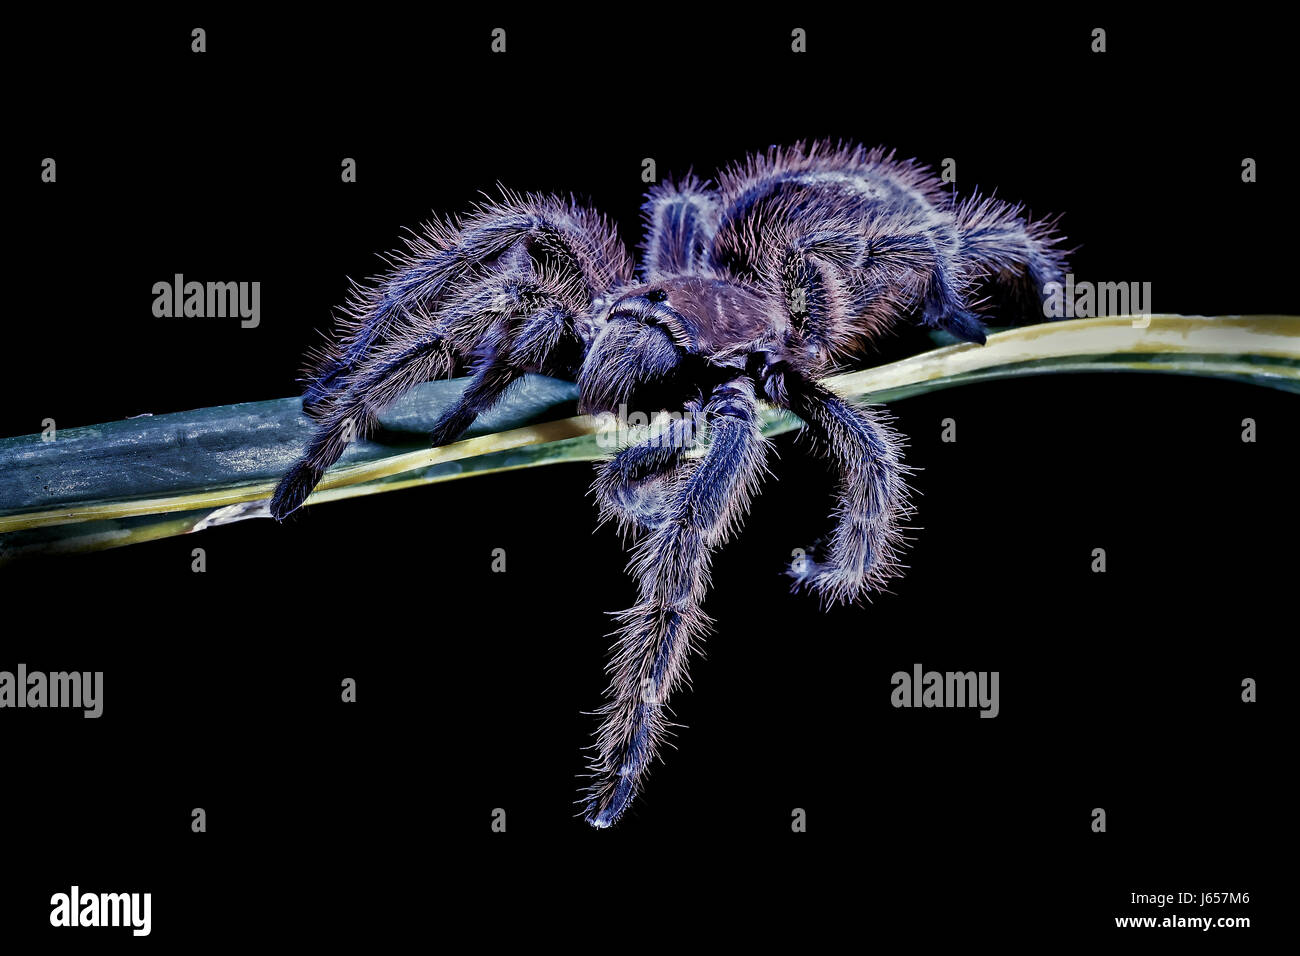 animal pet hairy spider exotic animal pet hairy spider exotic stock